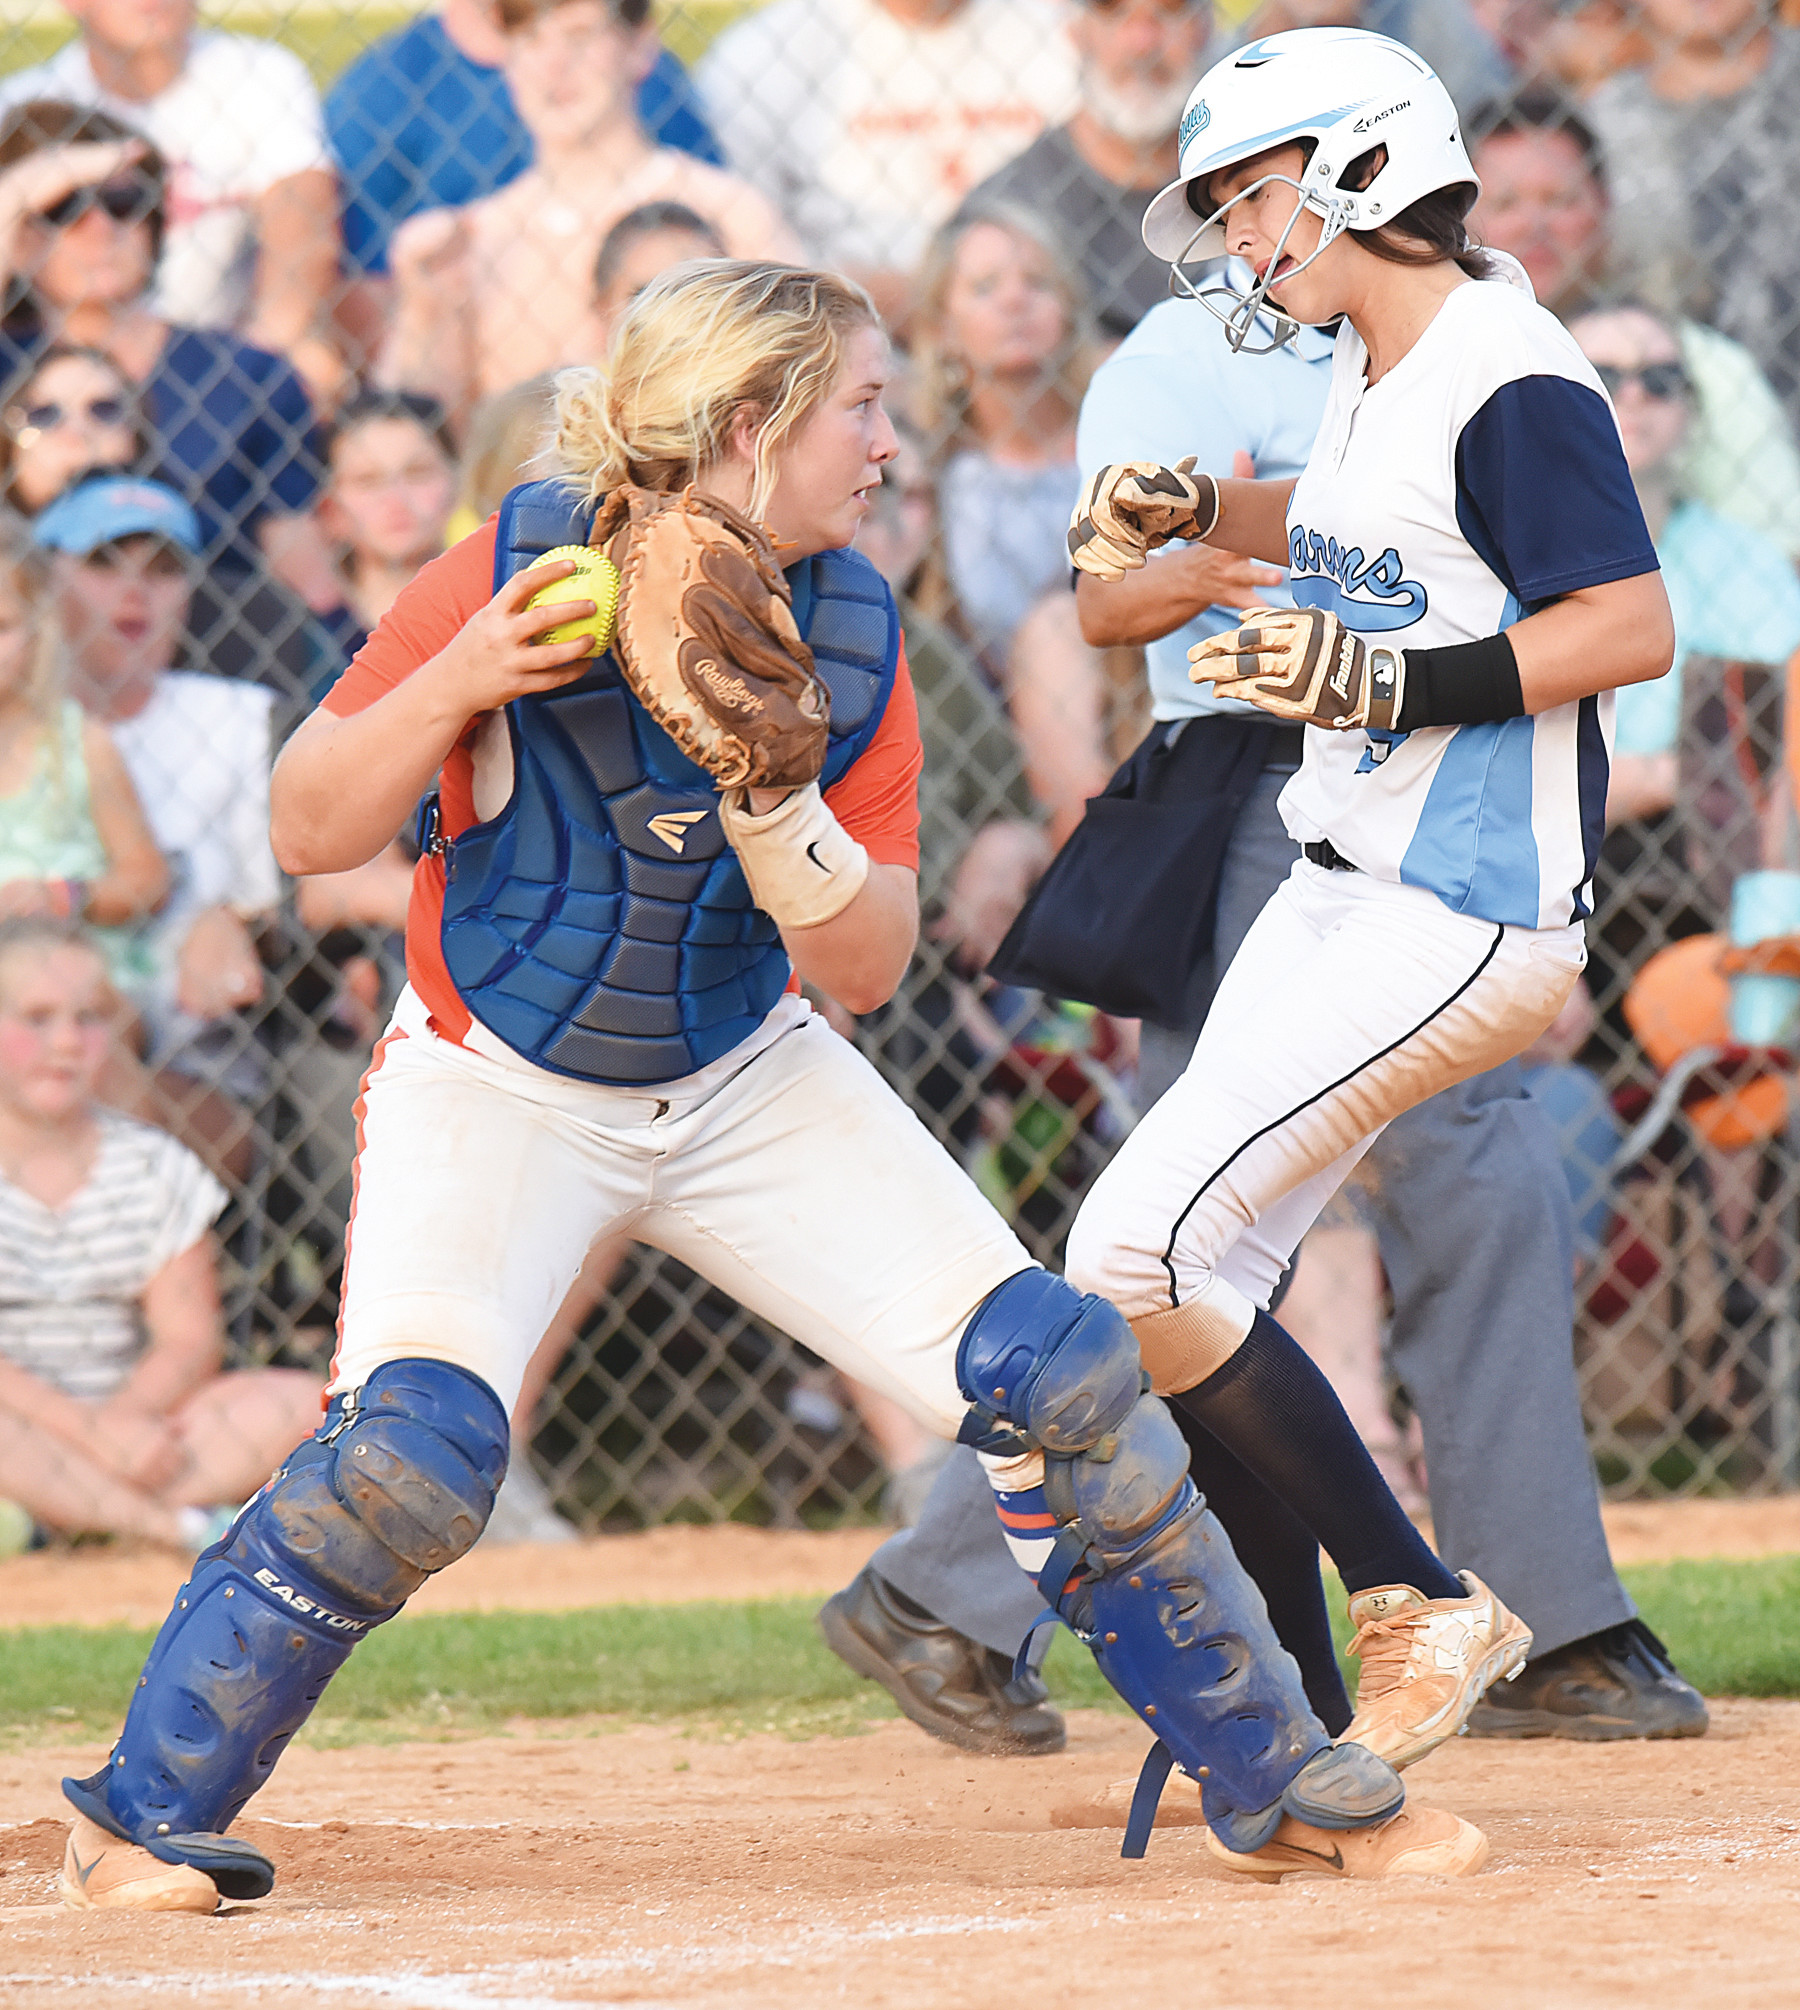 Laurence Manning Academy catcher Baylee Elms, left, forces out Wilson Hall's Kathryn  Sistare at home during the Lady Swampcats' come-from-behind 3-2 victory in eight innings in the deciding game of the SCISA 3A state championship series on Wednesday at the Lakewood High School field.